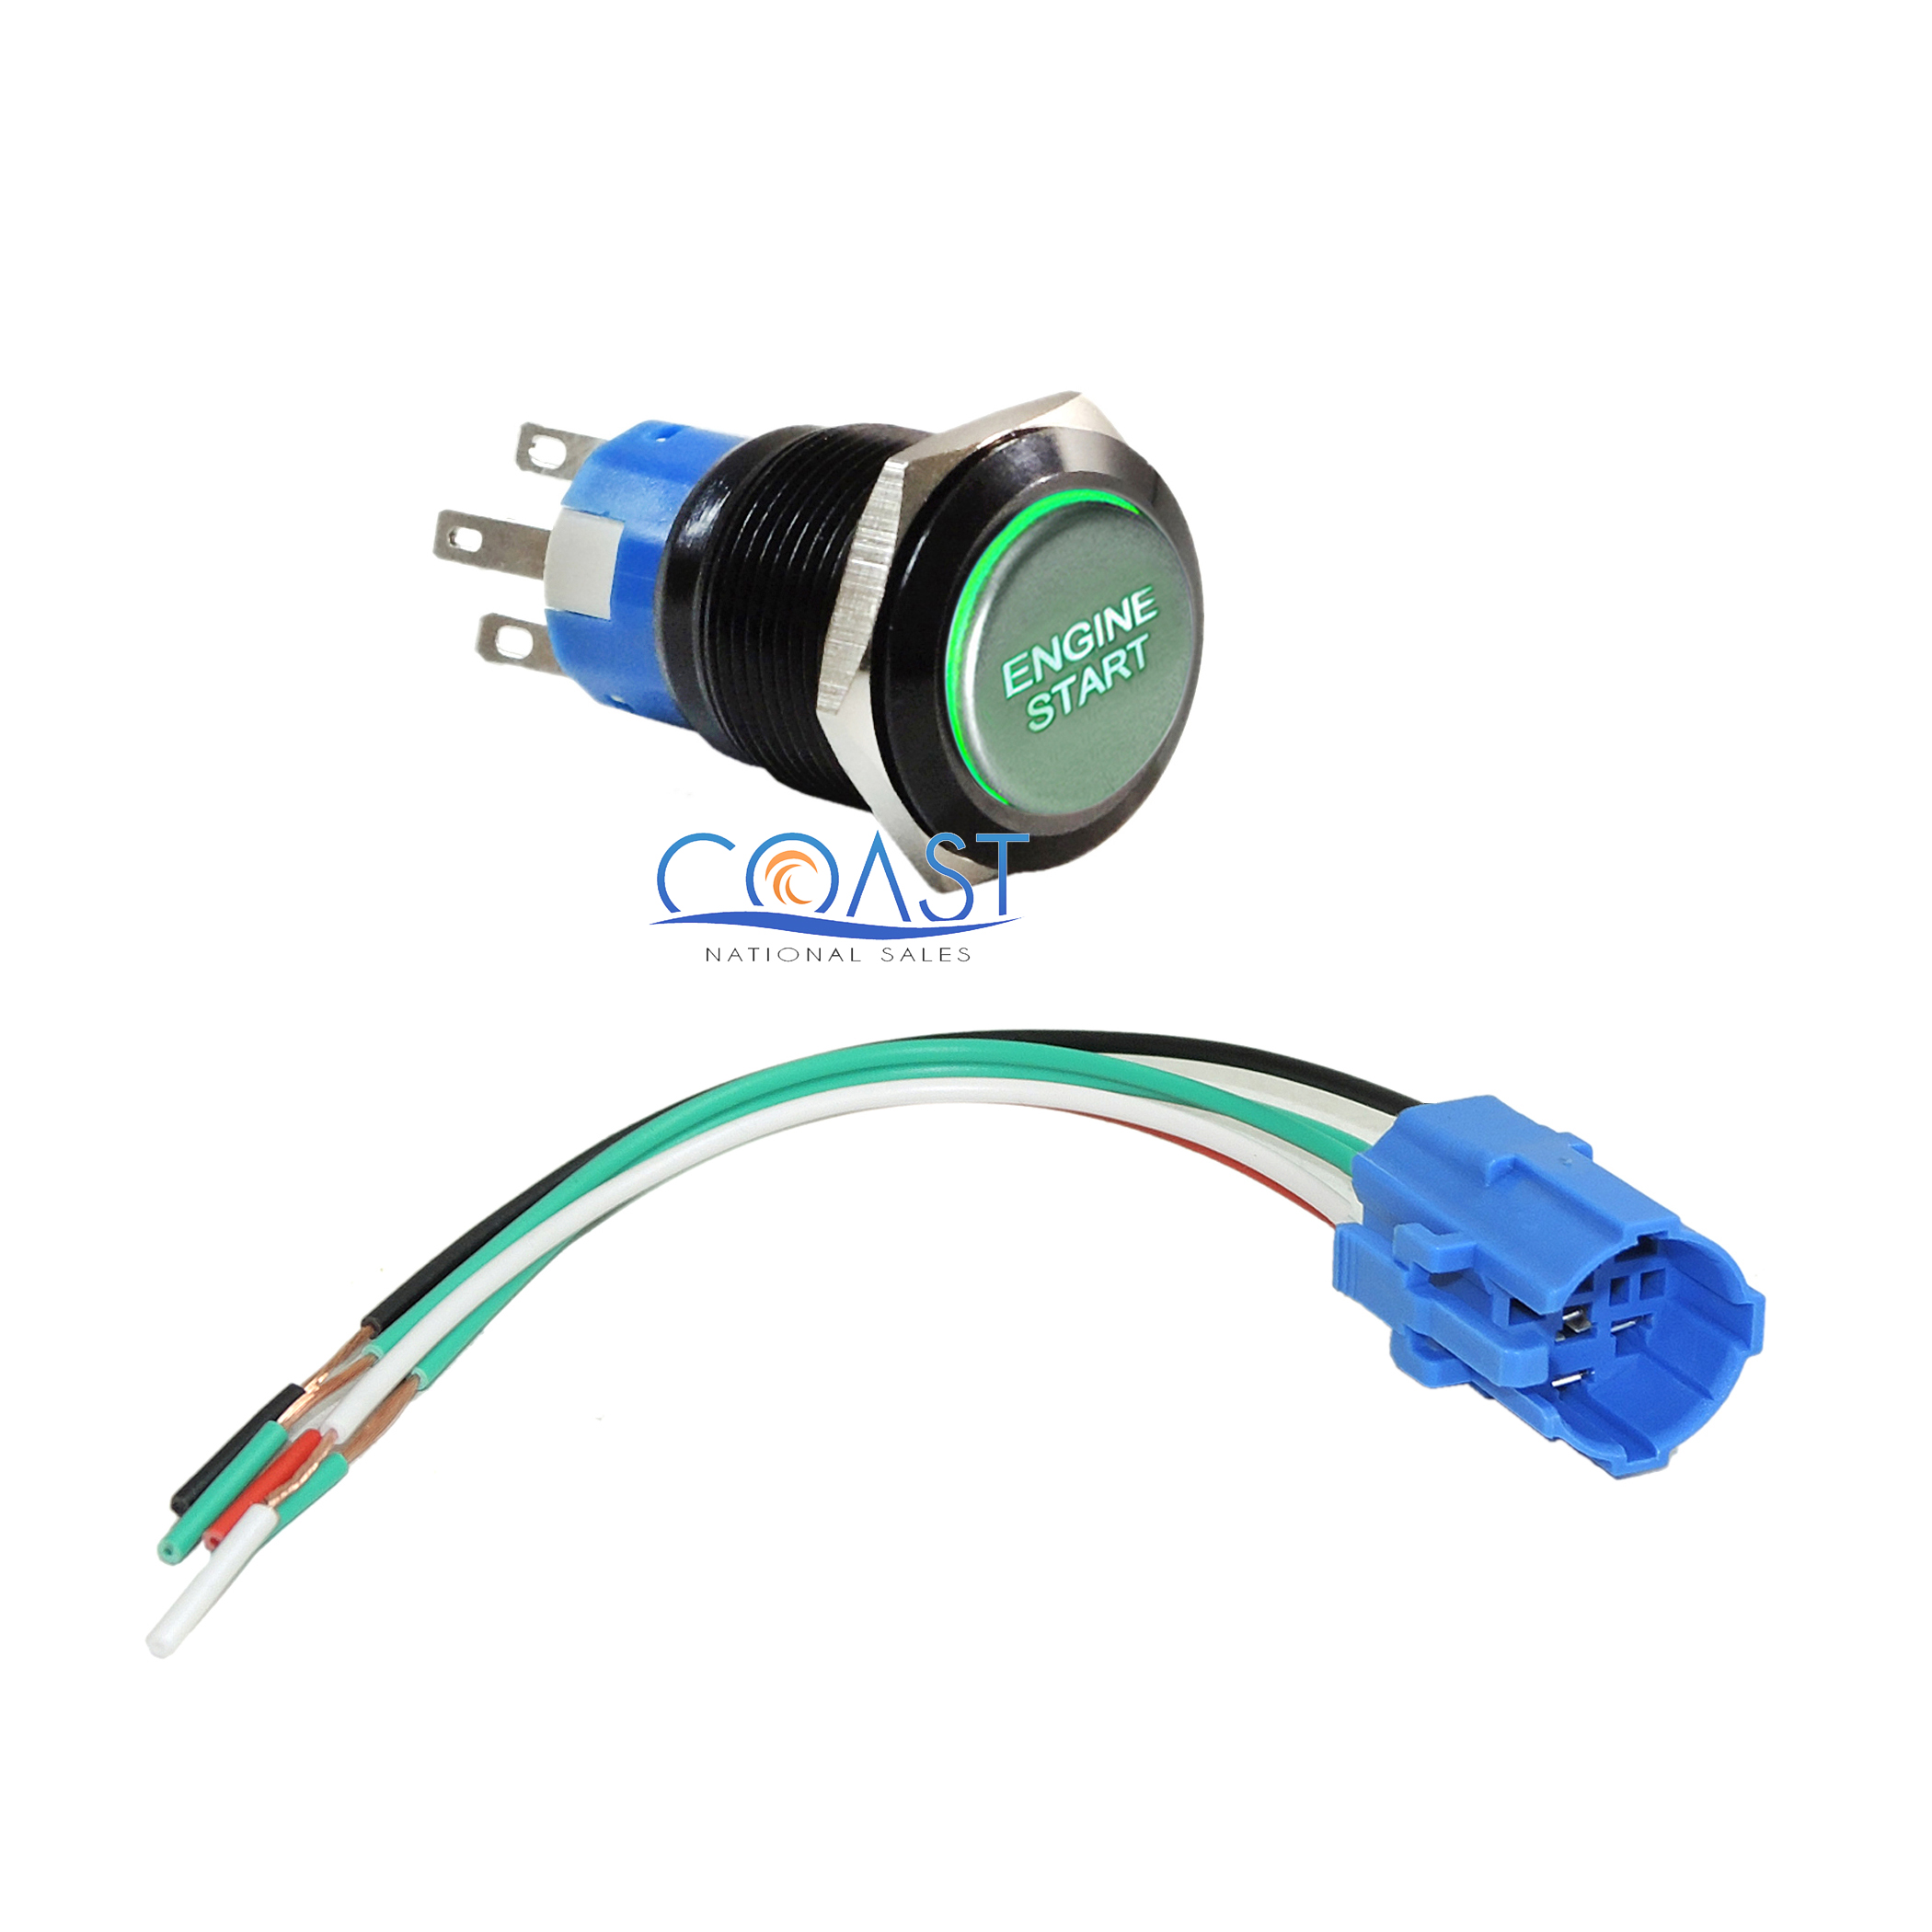 Durable 12V Red LED 19mm Green Momentary Engine Start Push Button Switch /& Plug